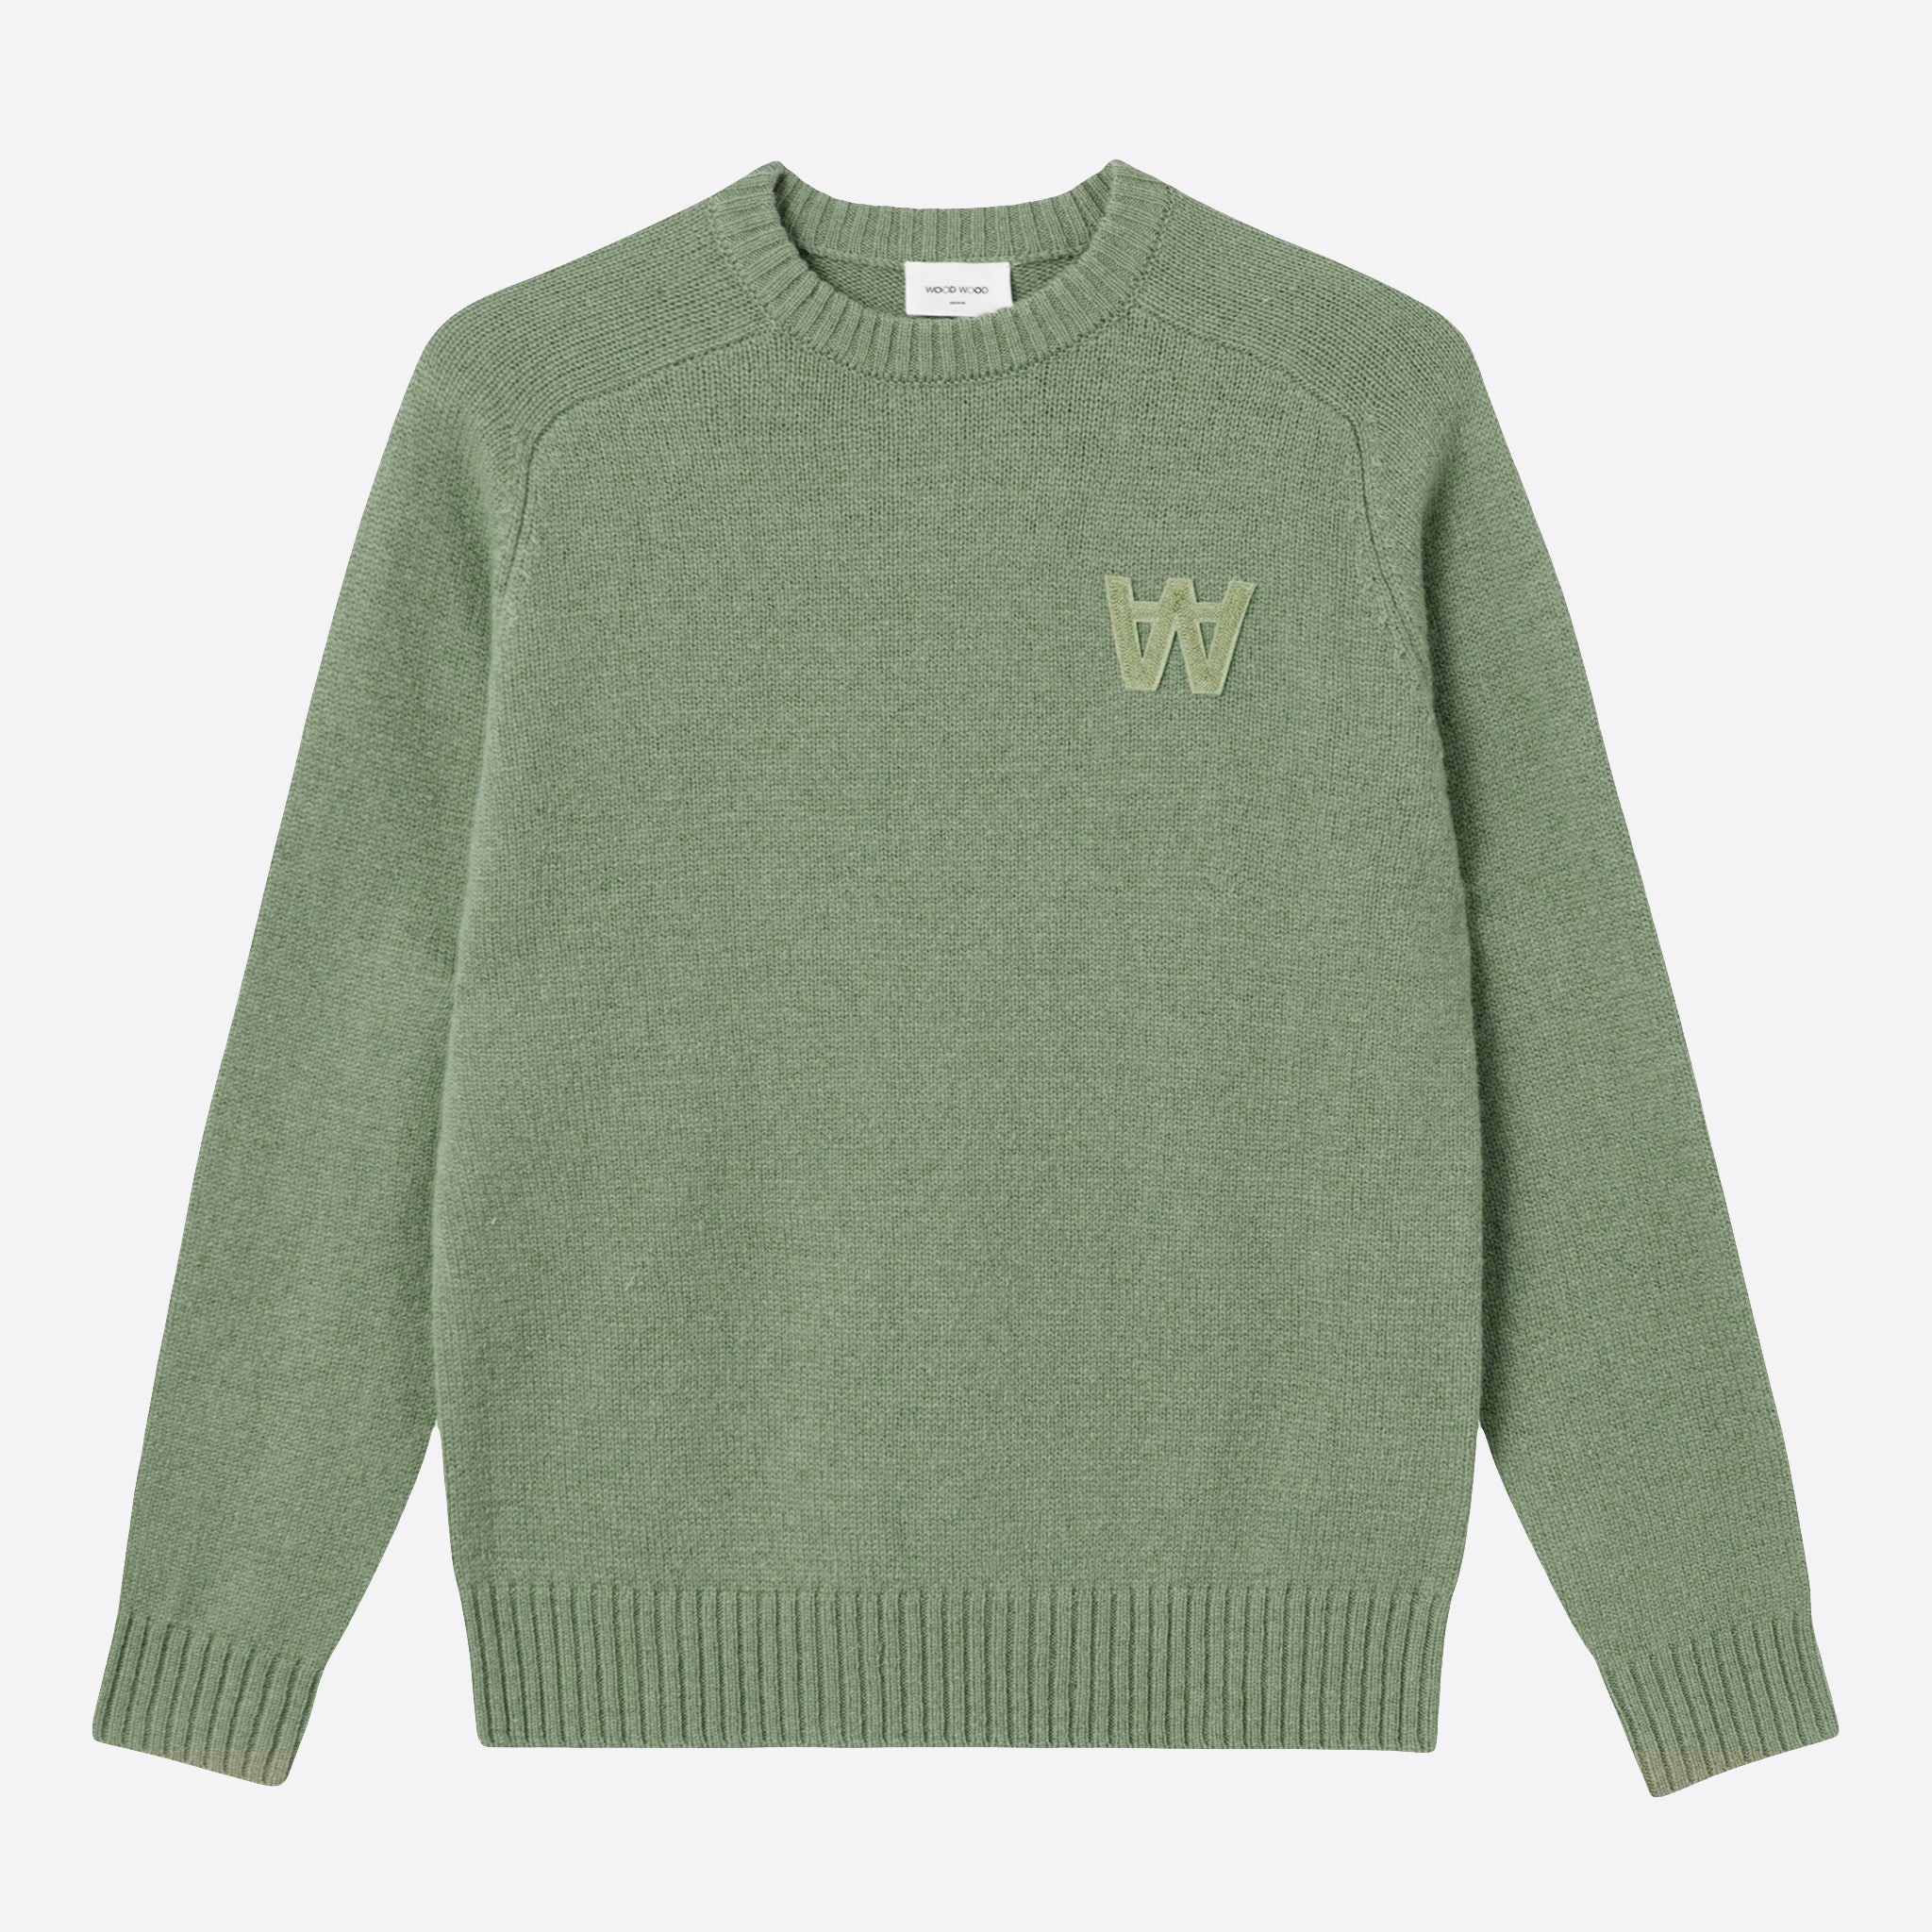 Wood Wood Kevin Sweater in Dusty Green